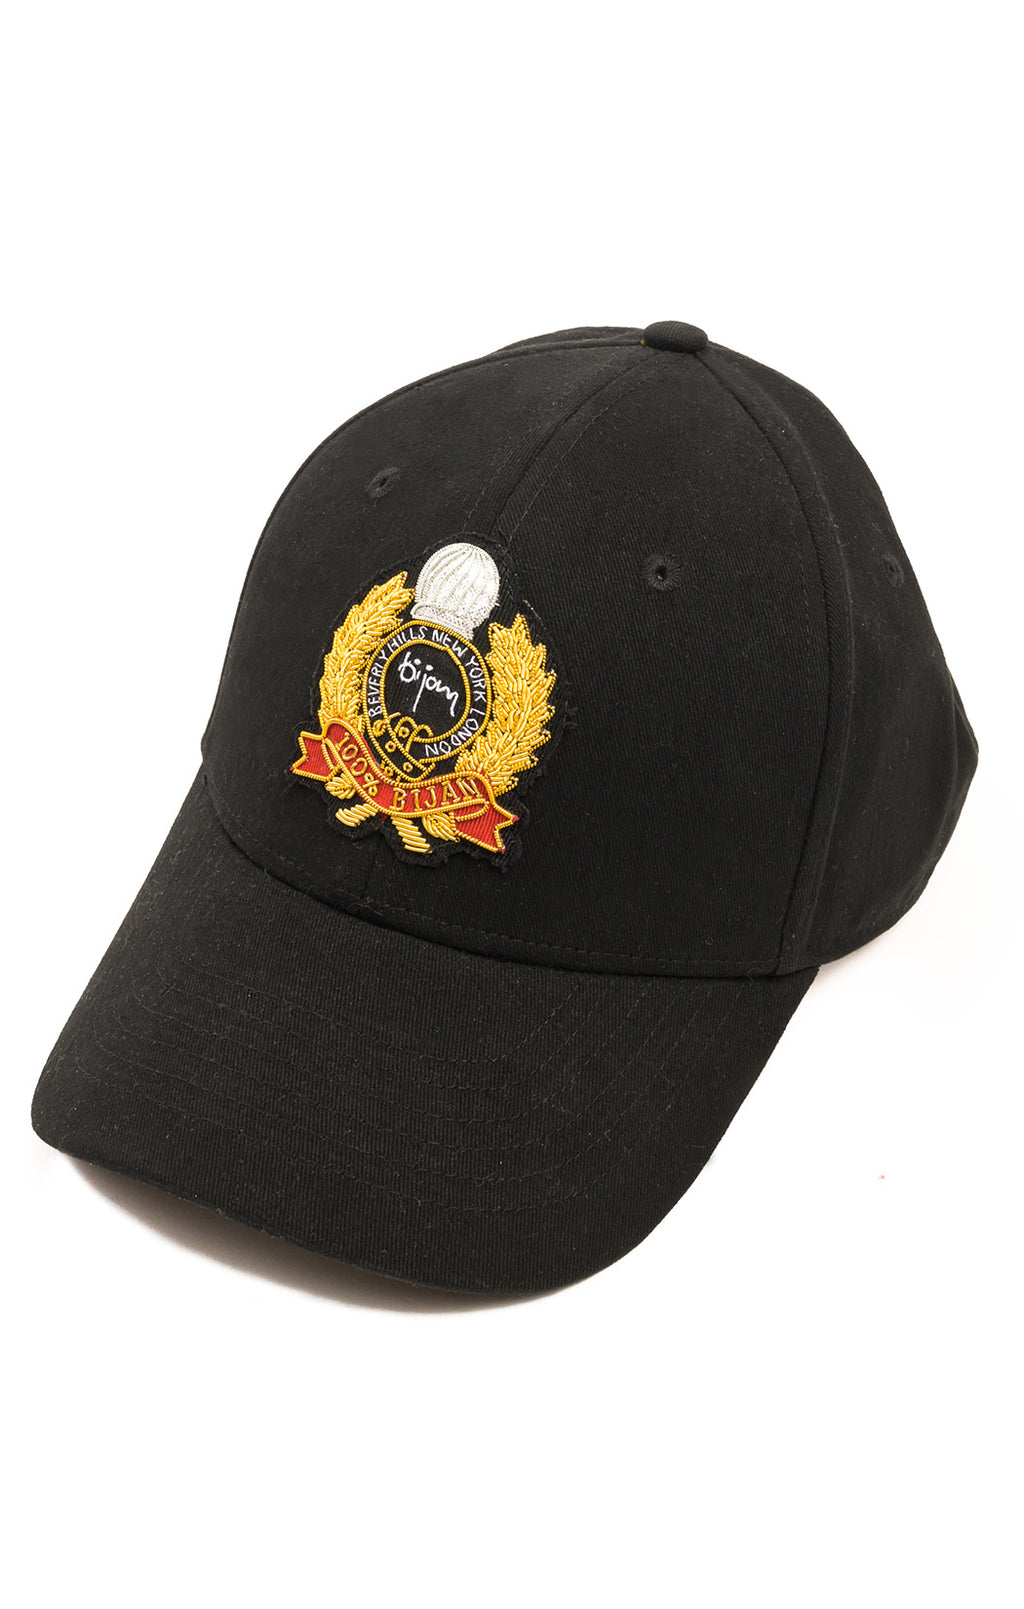 Front view of BIJAN Baseball hat  Size: O/S